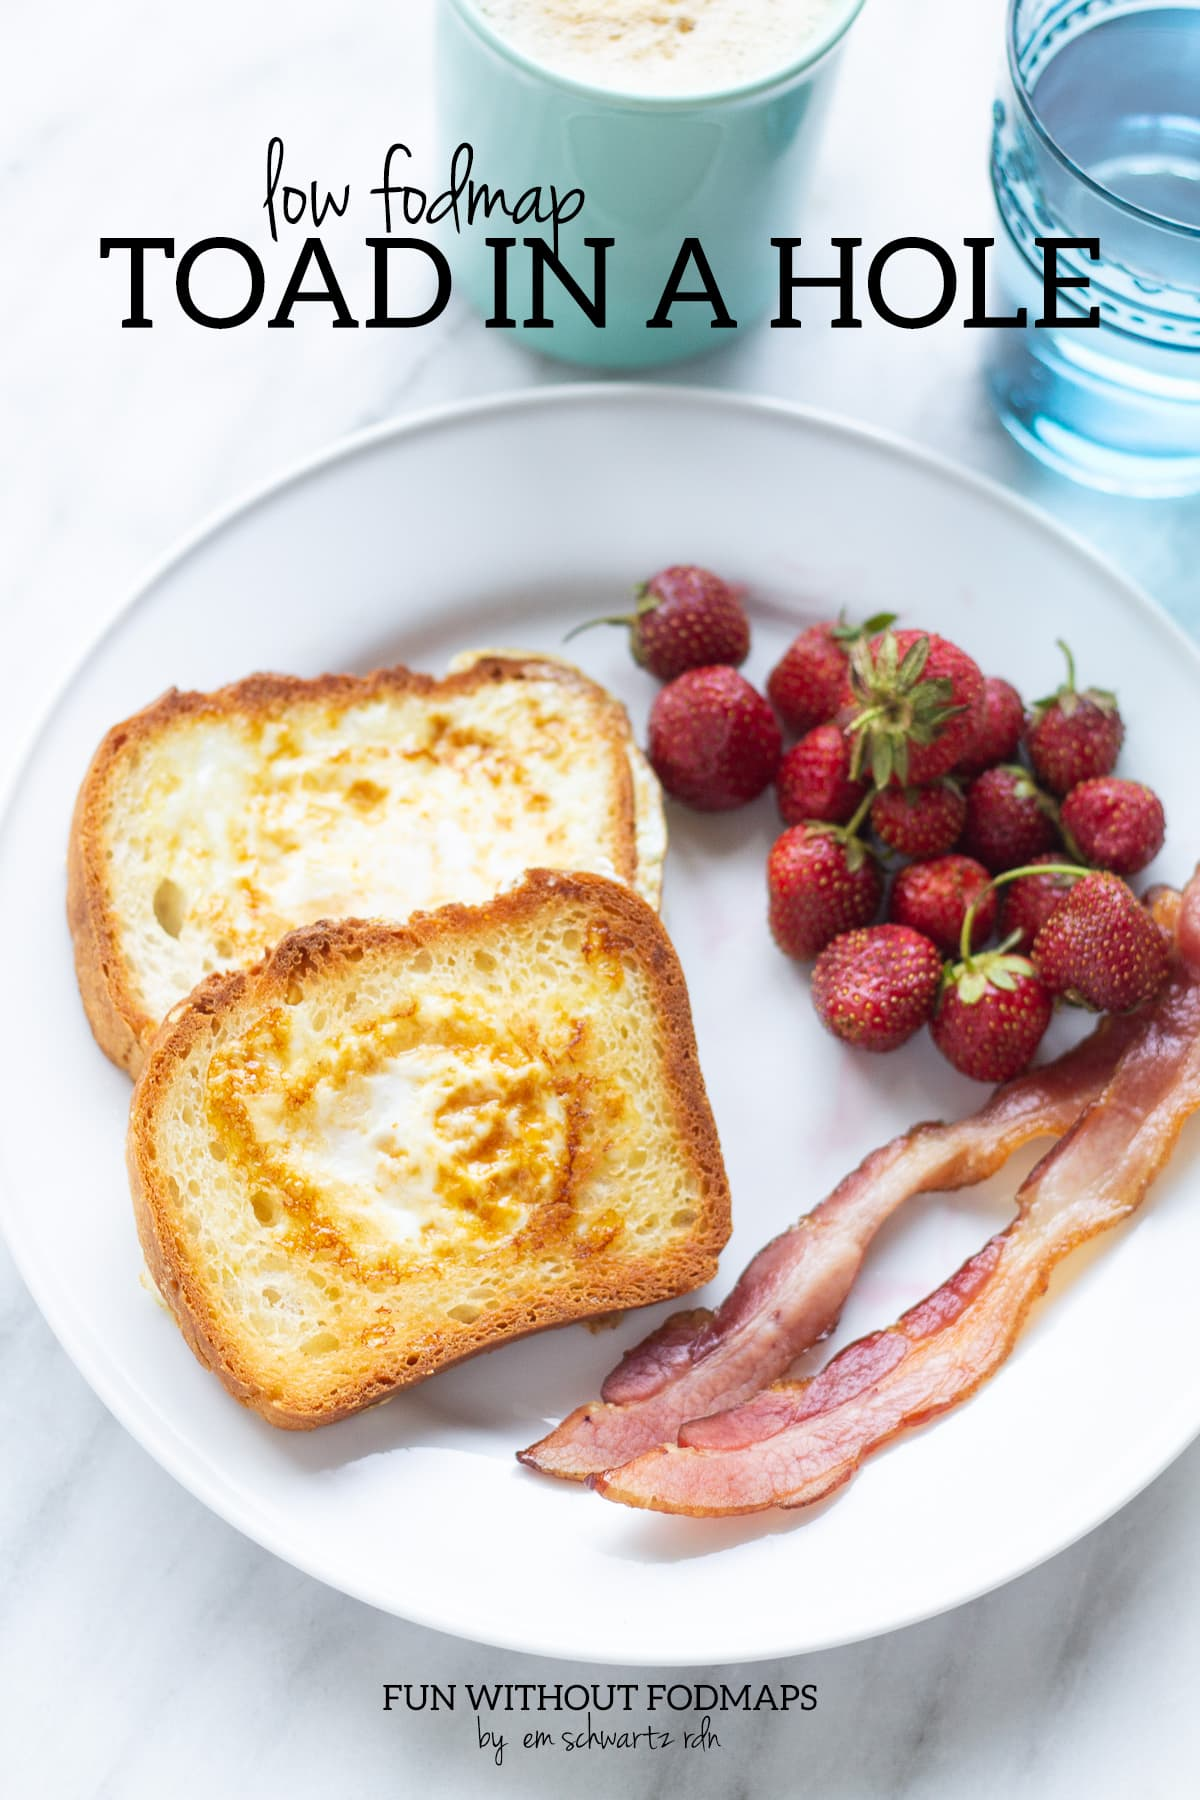 """A plate with two pieces of toast with eggs cooked into the center of them. Bacon and strawberries sit on the side. Above the plate, black text reads """"Low FODMAP Toad in a Hole""""."""